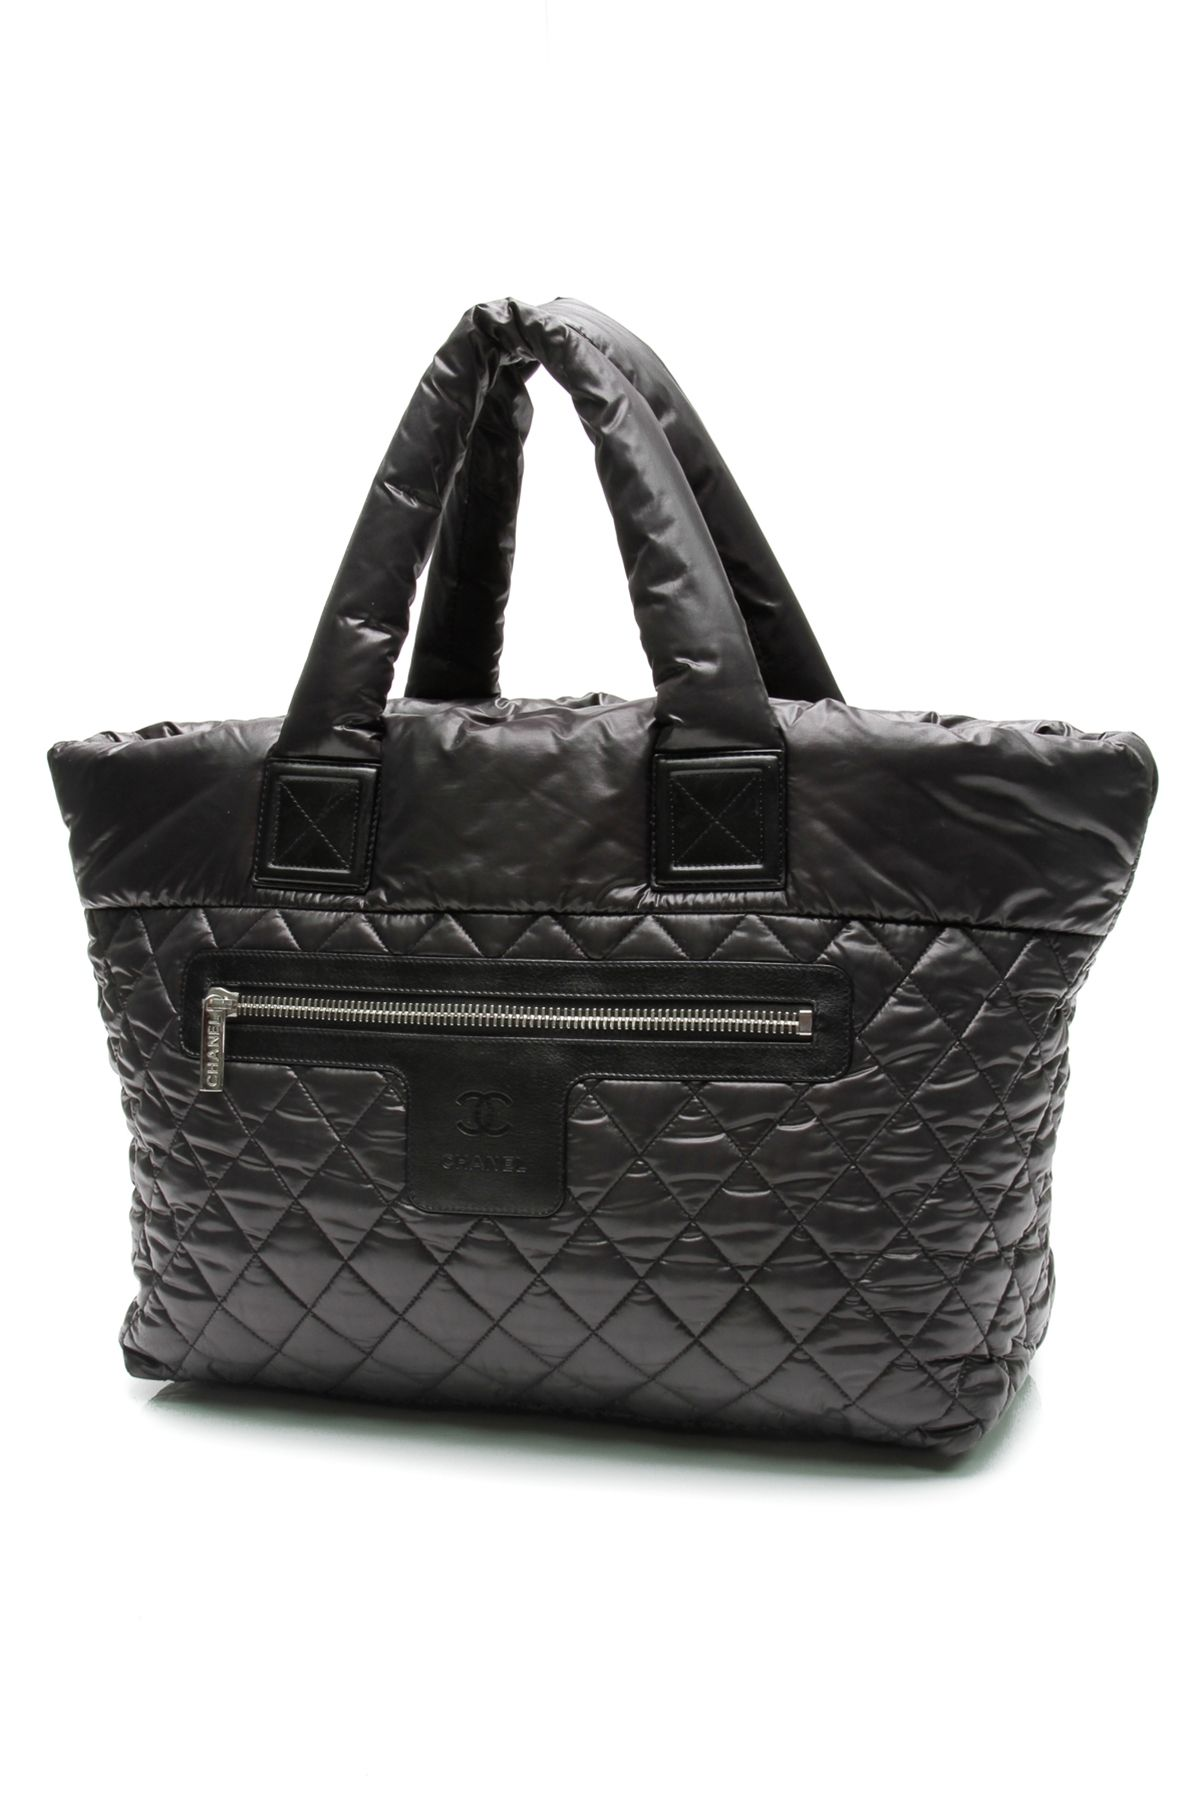 a963658a6f1a Chanel Black Quilted Nylon Coco Cocoon Tote Bag